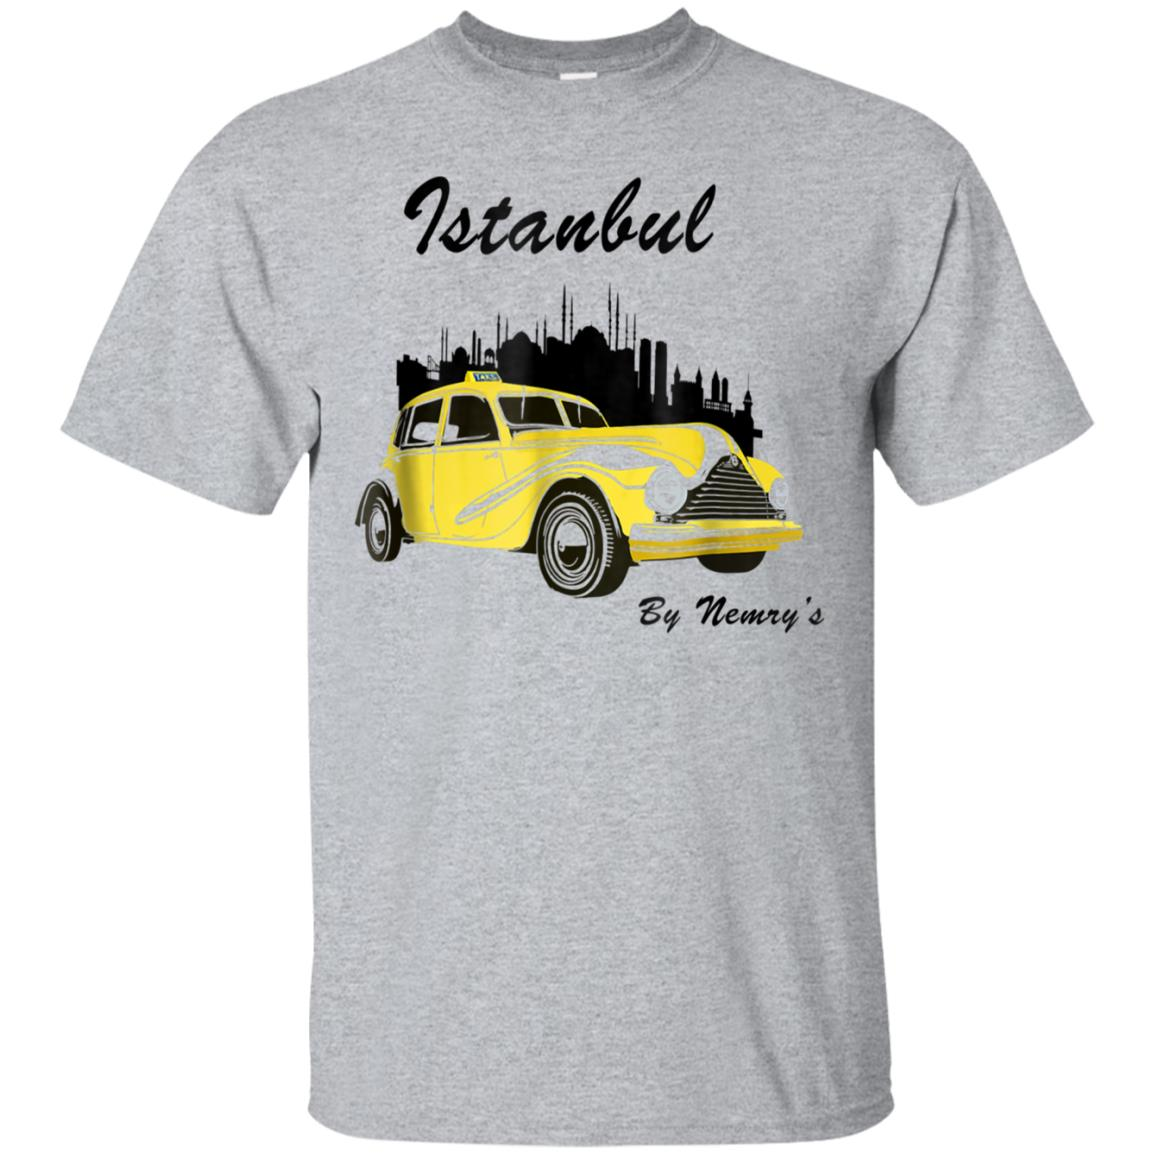 Istanbul Vintage T-Shirt, Istanbul souvenir, Retro-look tee 99promocode